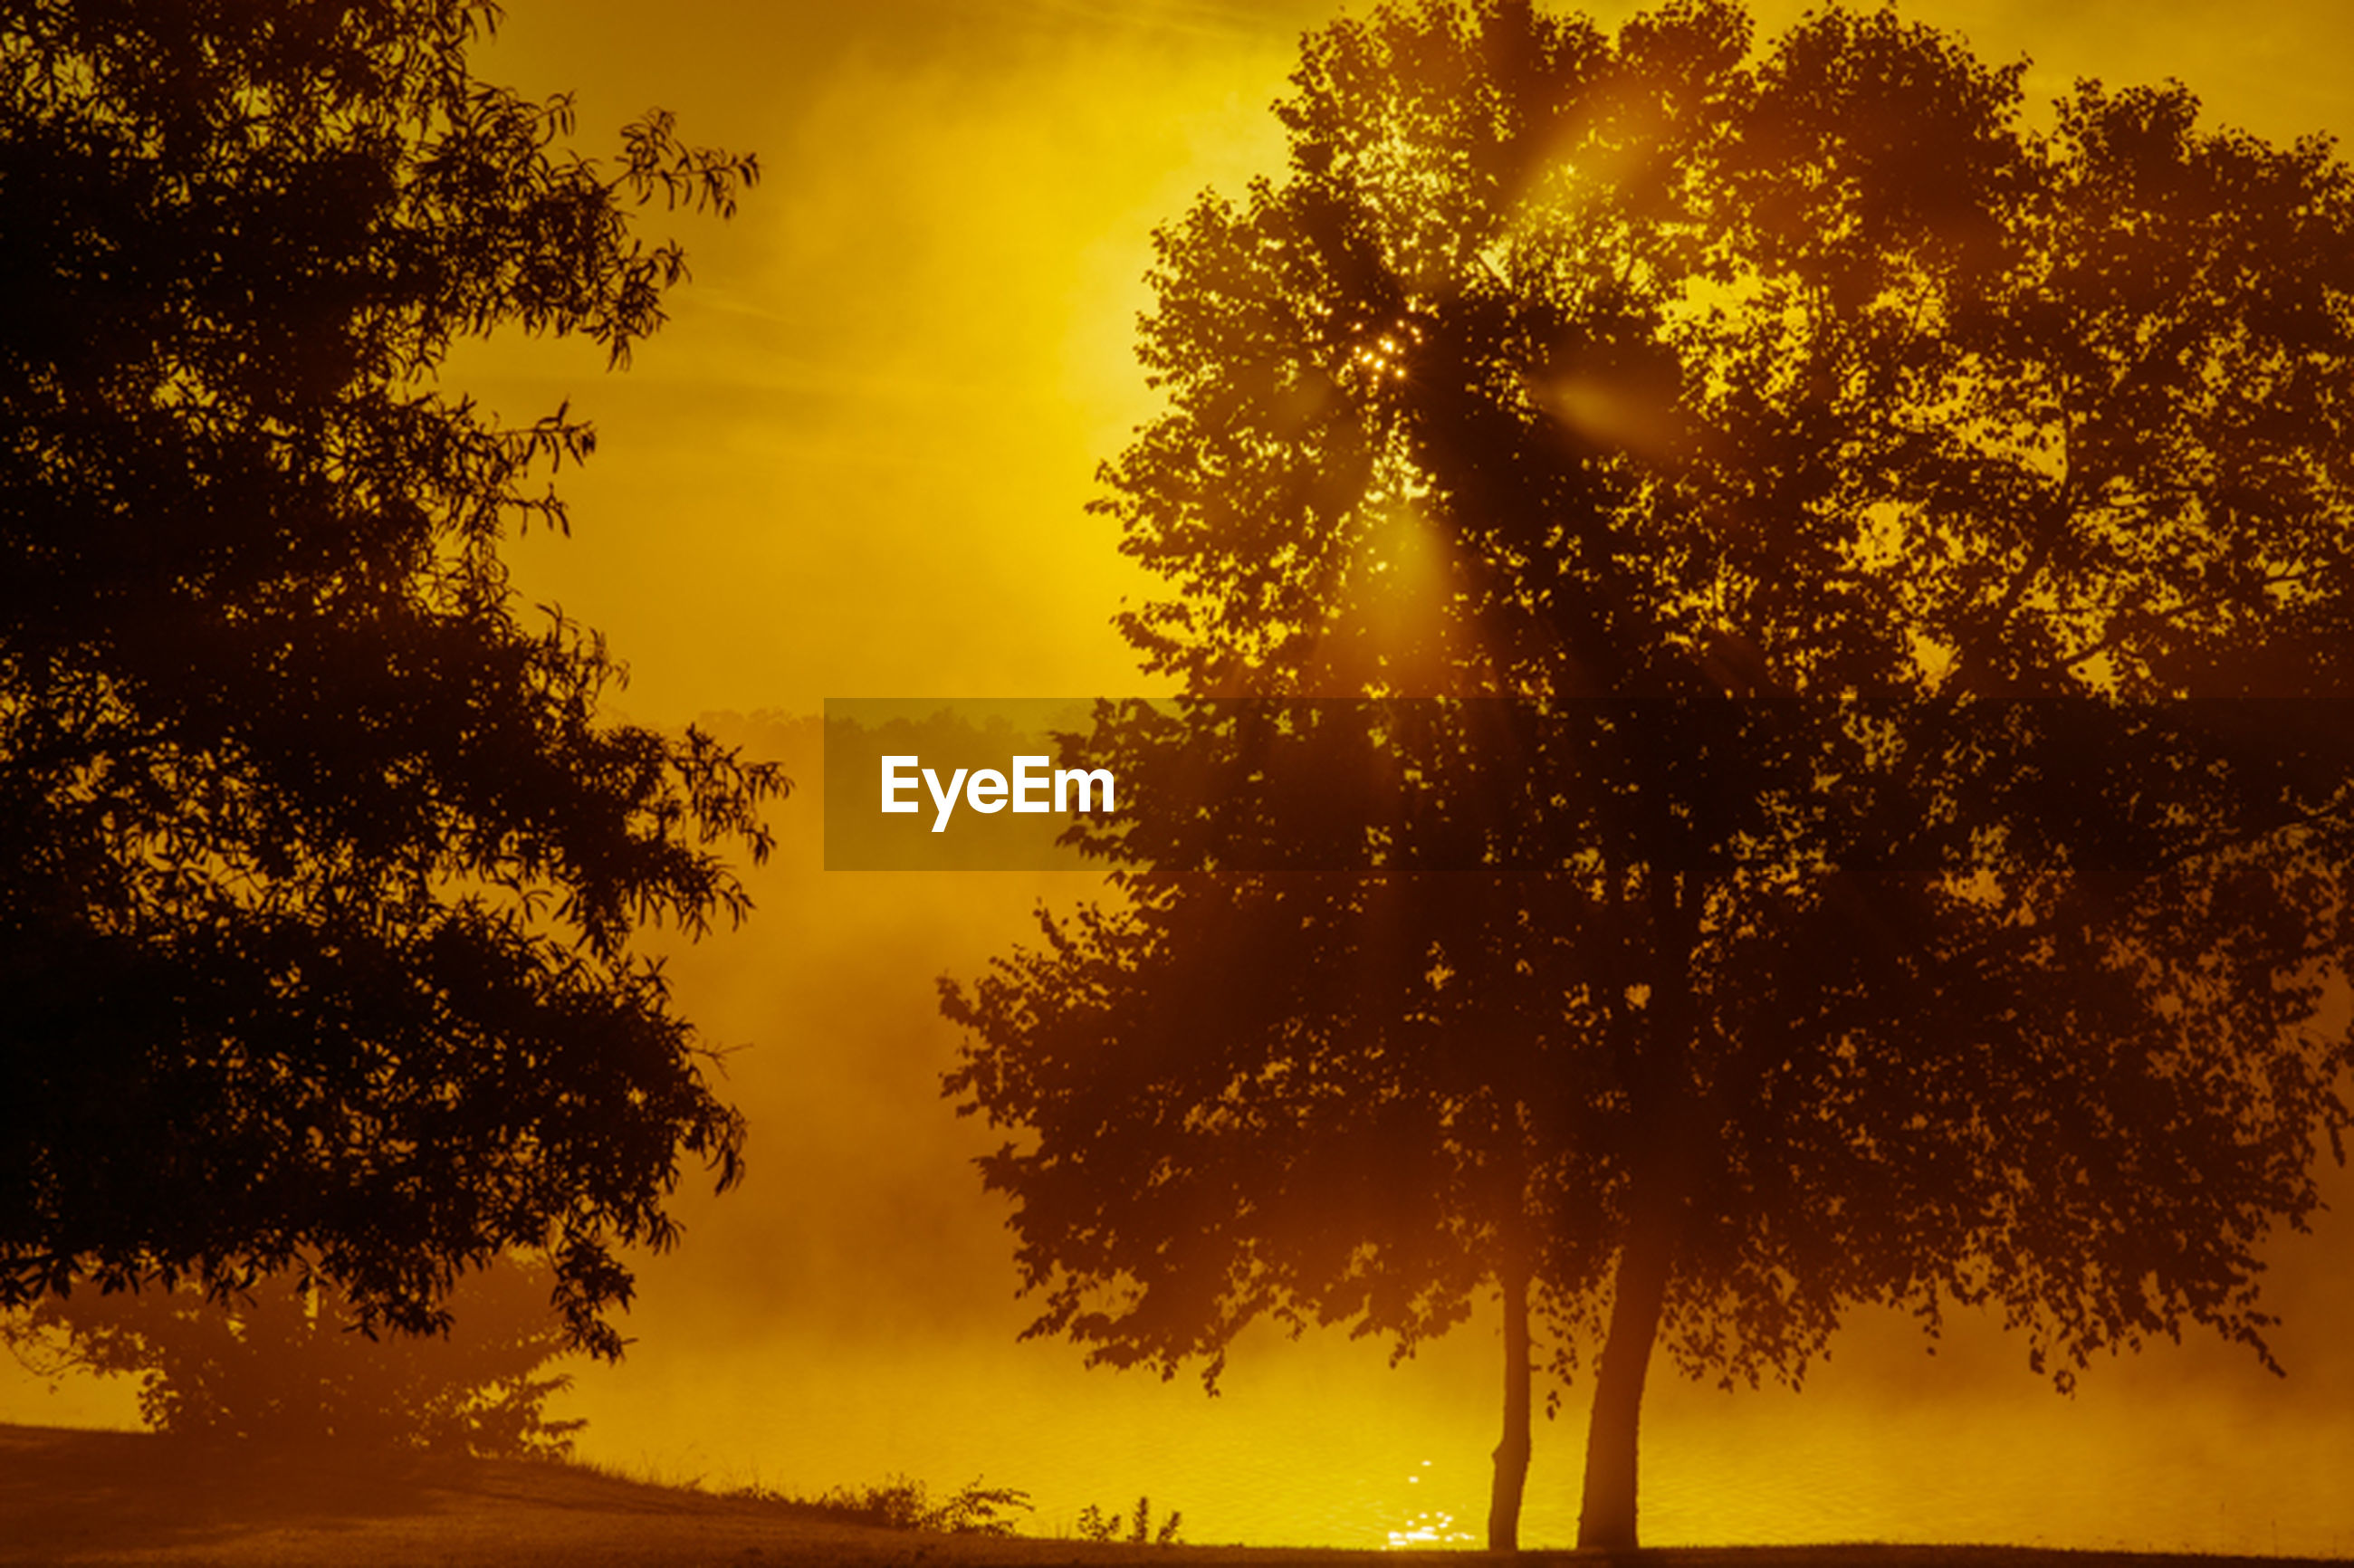 sunset, tree, orange color, silhouette, tranquility, beauty in nature, tranquil scene, scenics, nature, sky, growth, idyllic, branch, yellow, tree trunk, sun, outdoors, no people, non-urban scene, sunlight